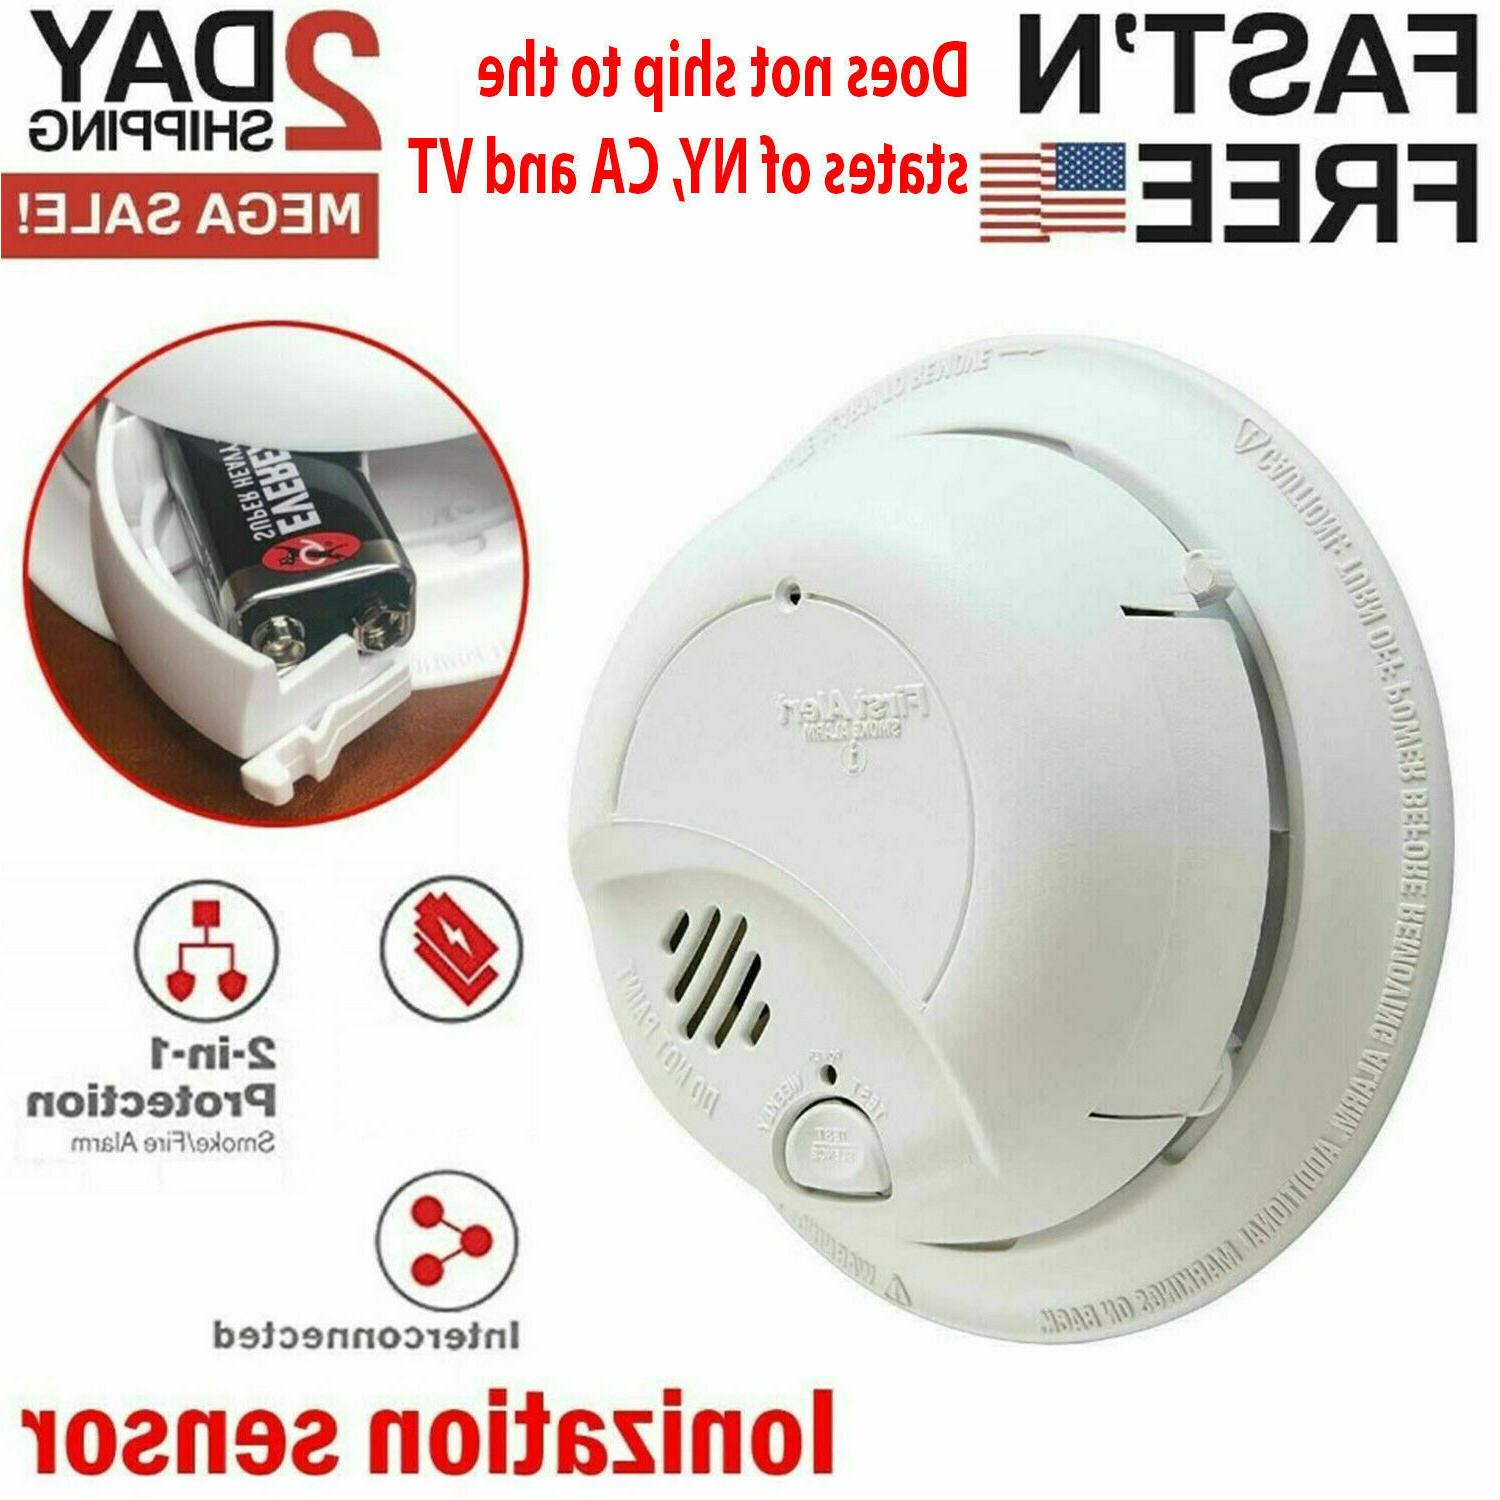 First Fire Alarm Notifier with